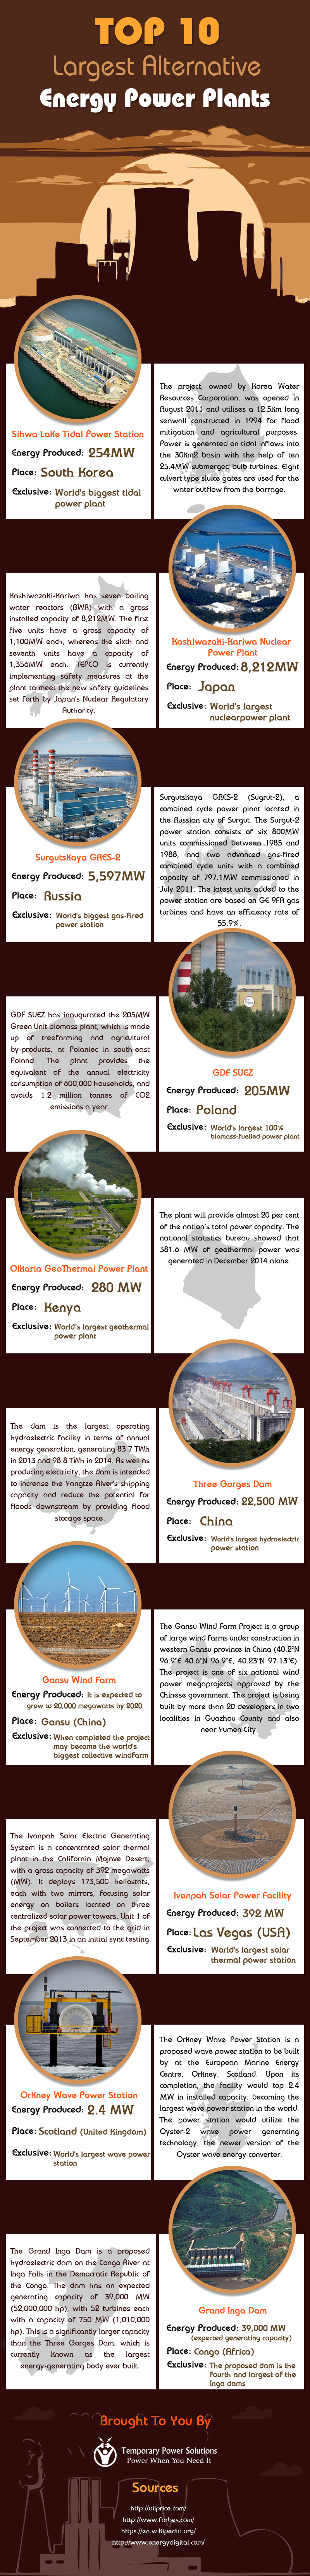 Largest Alternative Energy Power Plants